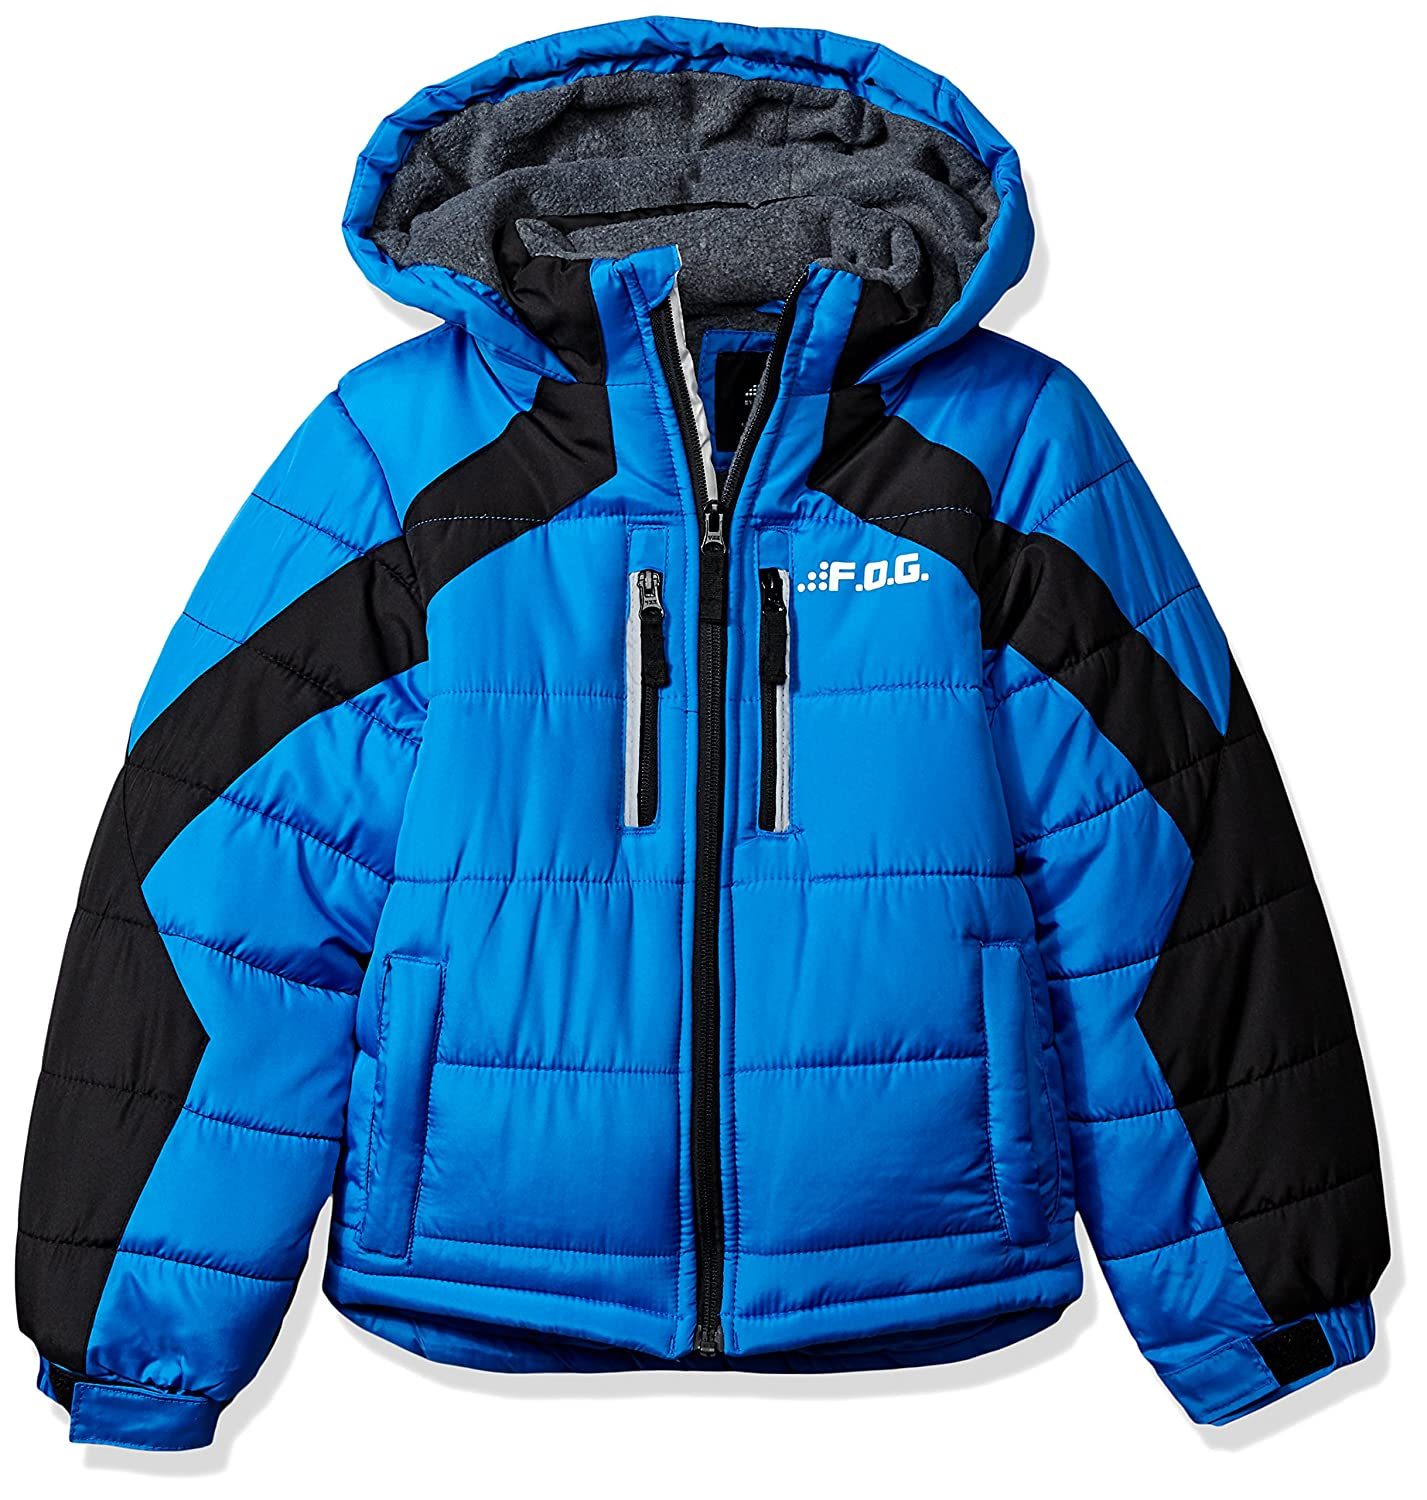 London Fog Boys' Active Puffer Jacket Winter Coat